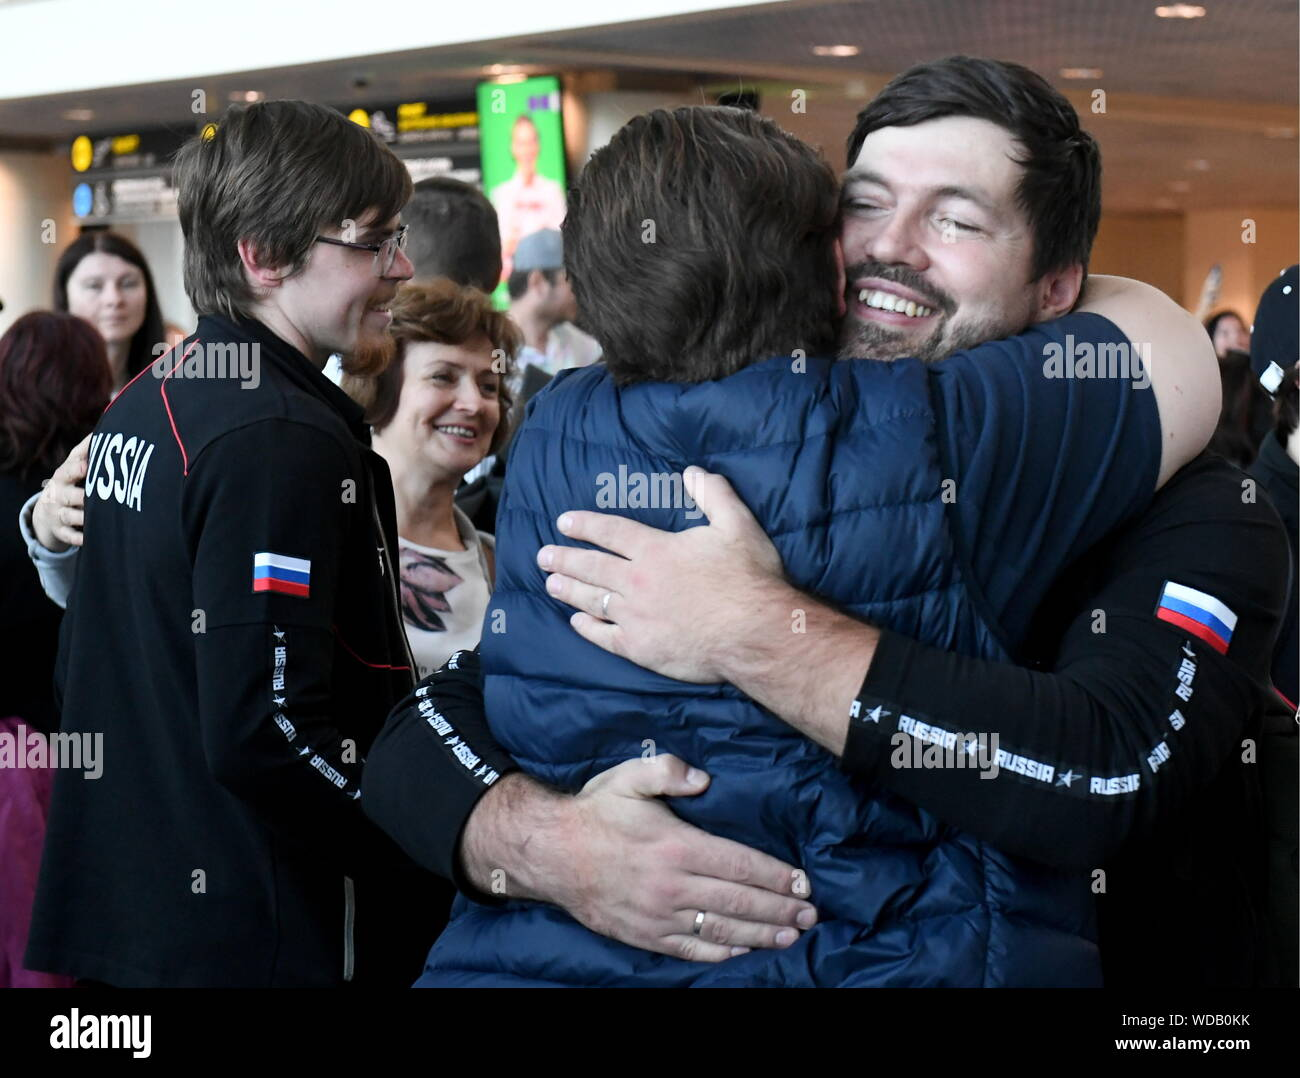 Russia. 29th Aug, 2019. MOSCOW REGION, RUSSIA - AUGUST 29, 2019: A ceremony to welcome Team Russia members at Domodedovo International Airport after WorldSkills Kazan 2019, the 45th WorldSkills Competition. The team has won 14 gold, 4 silver, 4 bronze medals and 45 medallions for professionalism at the competition. Maxim Grogoyev/TASS Credit: ITAR-TASS News Agency/Alamy Live News Stock Photo